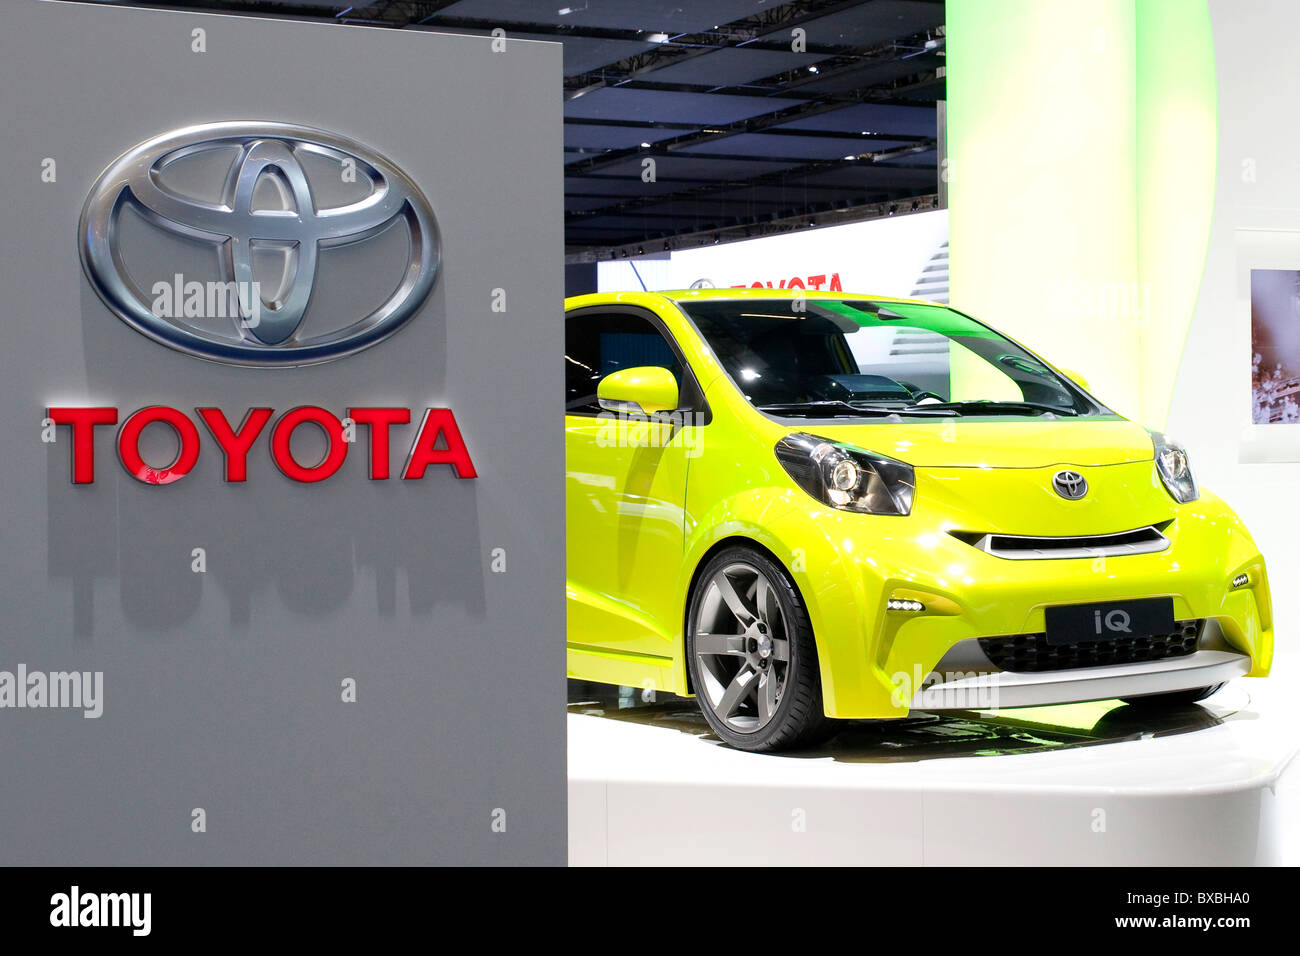 Logo of the Toyota auto maker with a IQ compact car at the 63. Internationale Automobilausstellung International - Stock Image